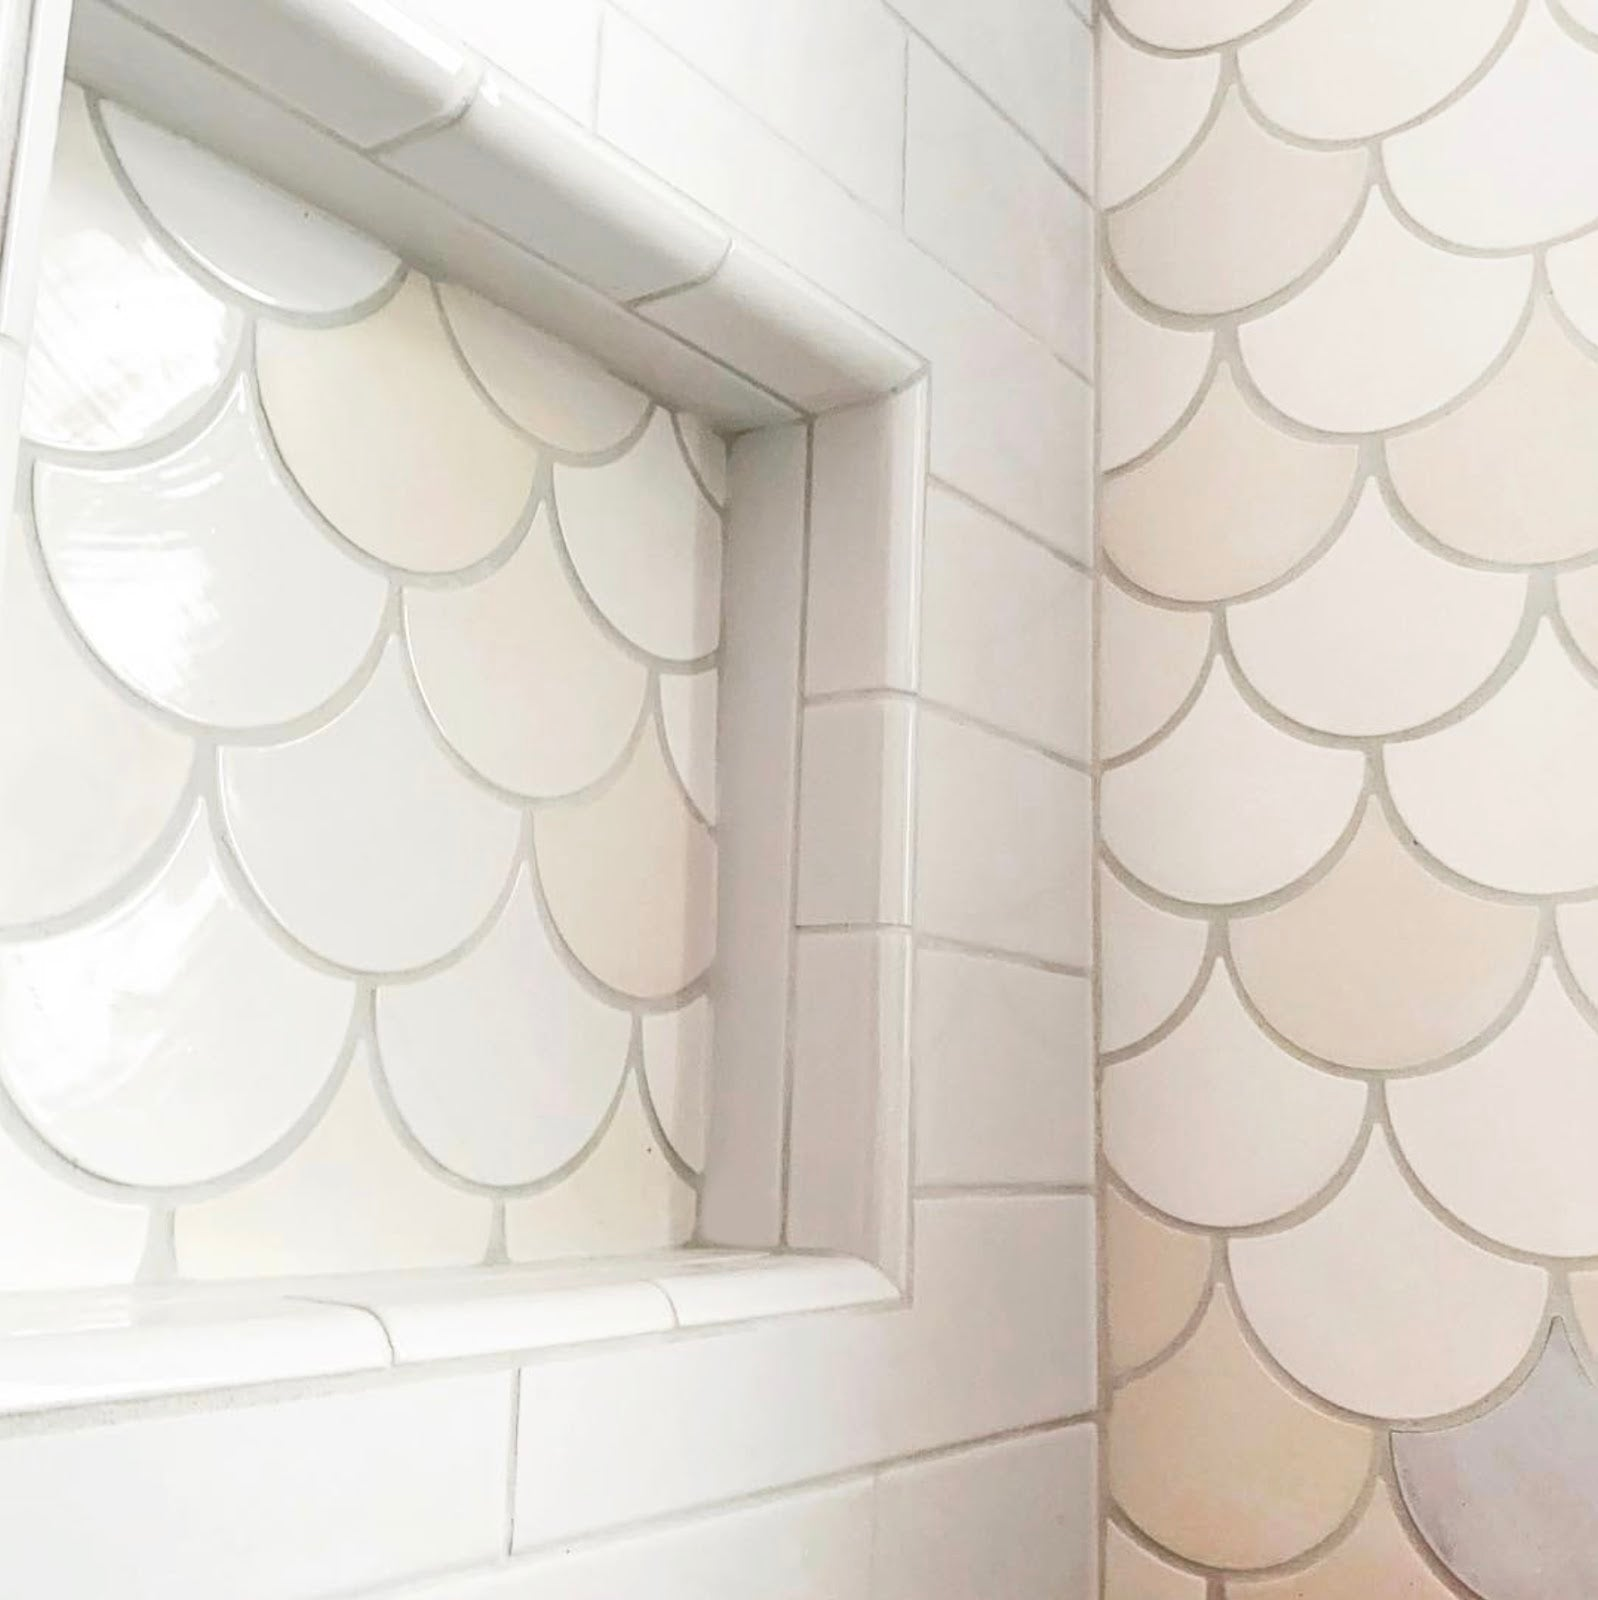 6 Niche Ideas For Chic Shower Shelving